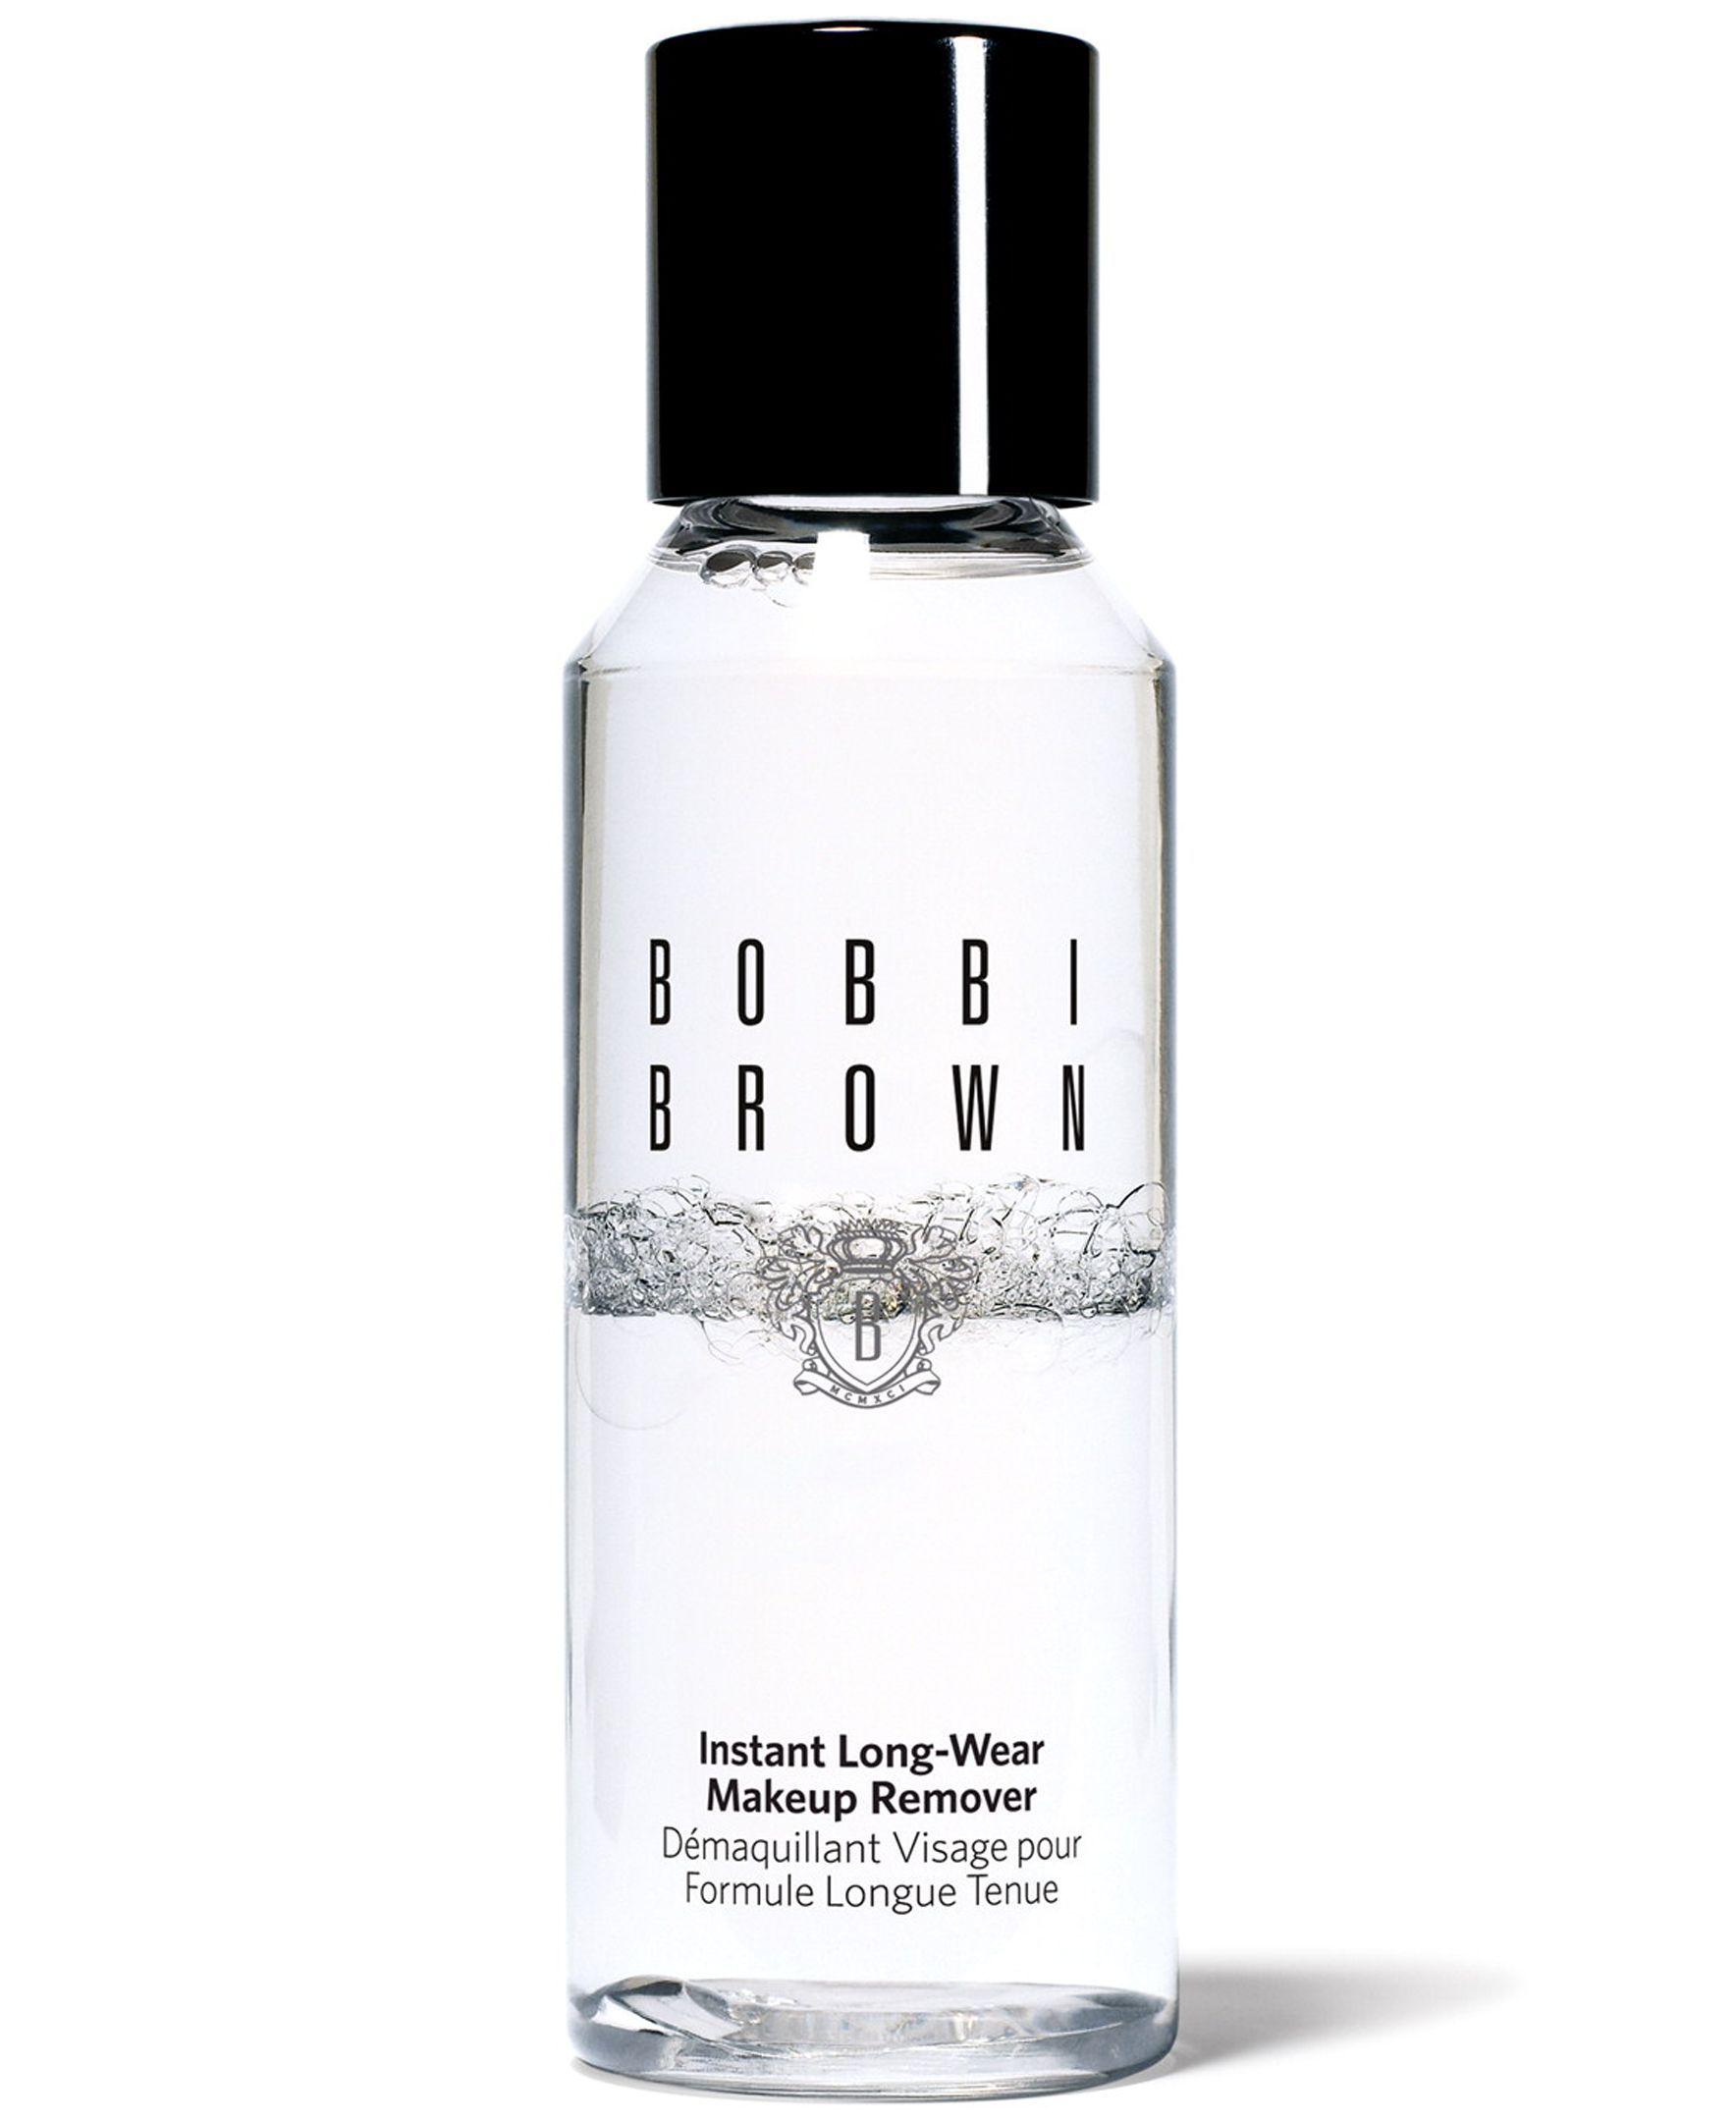 Instant LongWear Makeup Remover (With images) Long wear